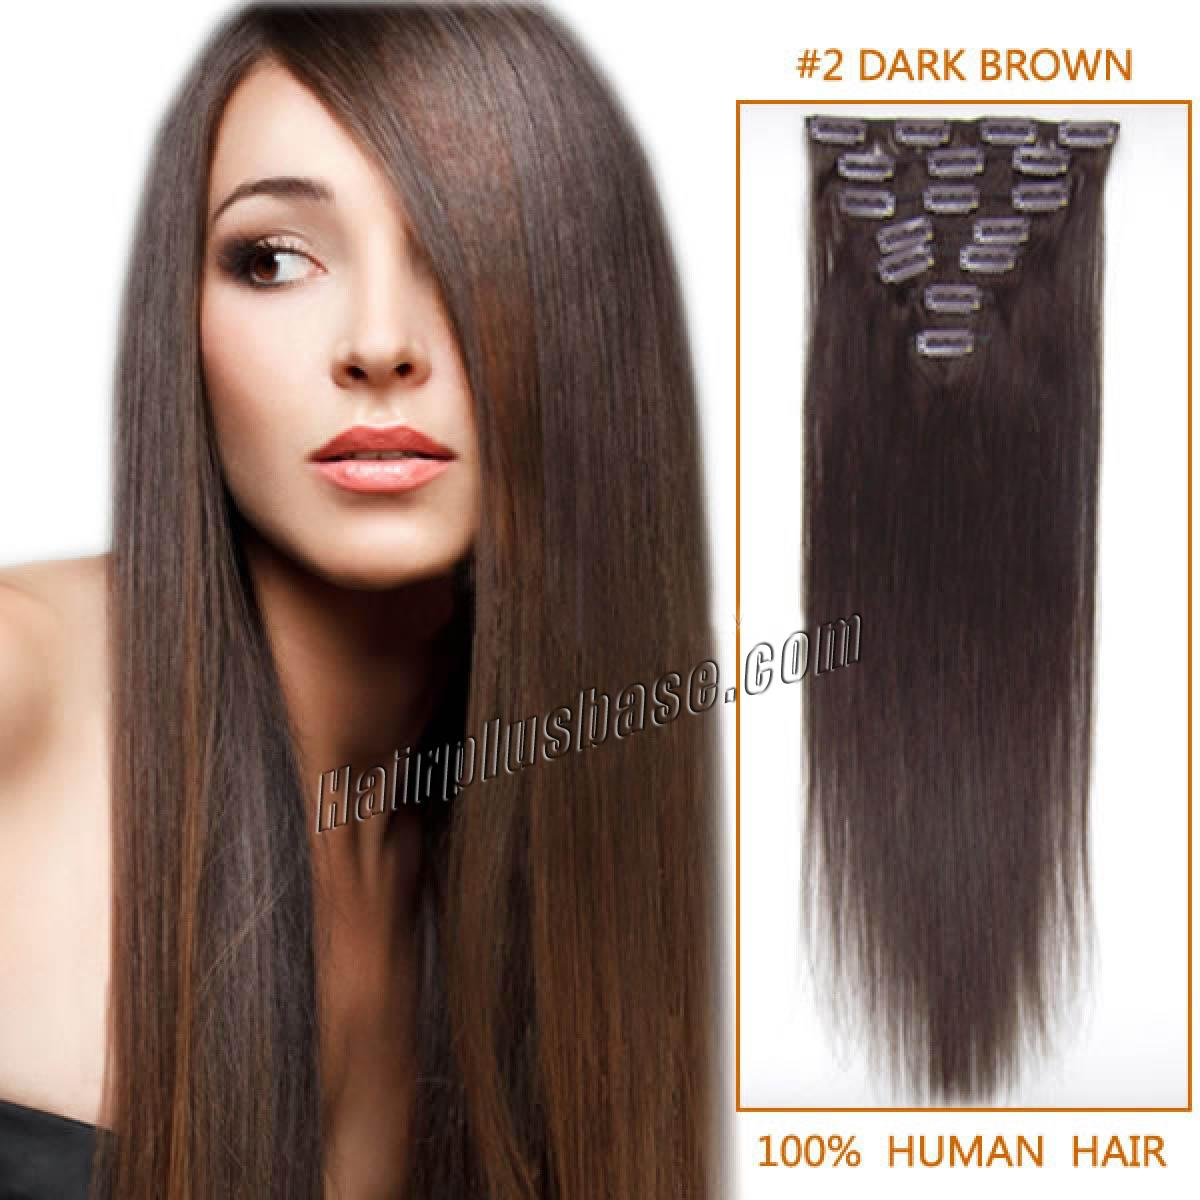 18 Inch 2 Dark Brown Clip In Remy